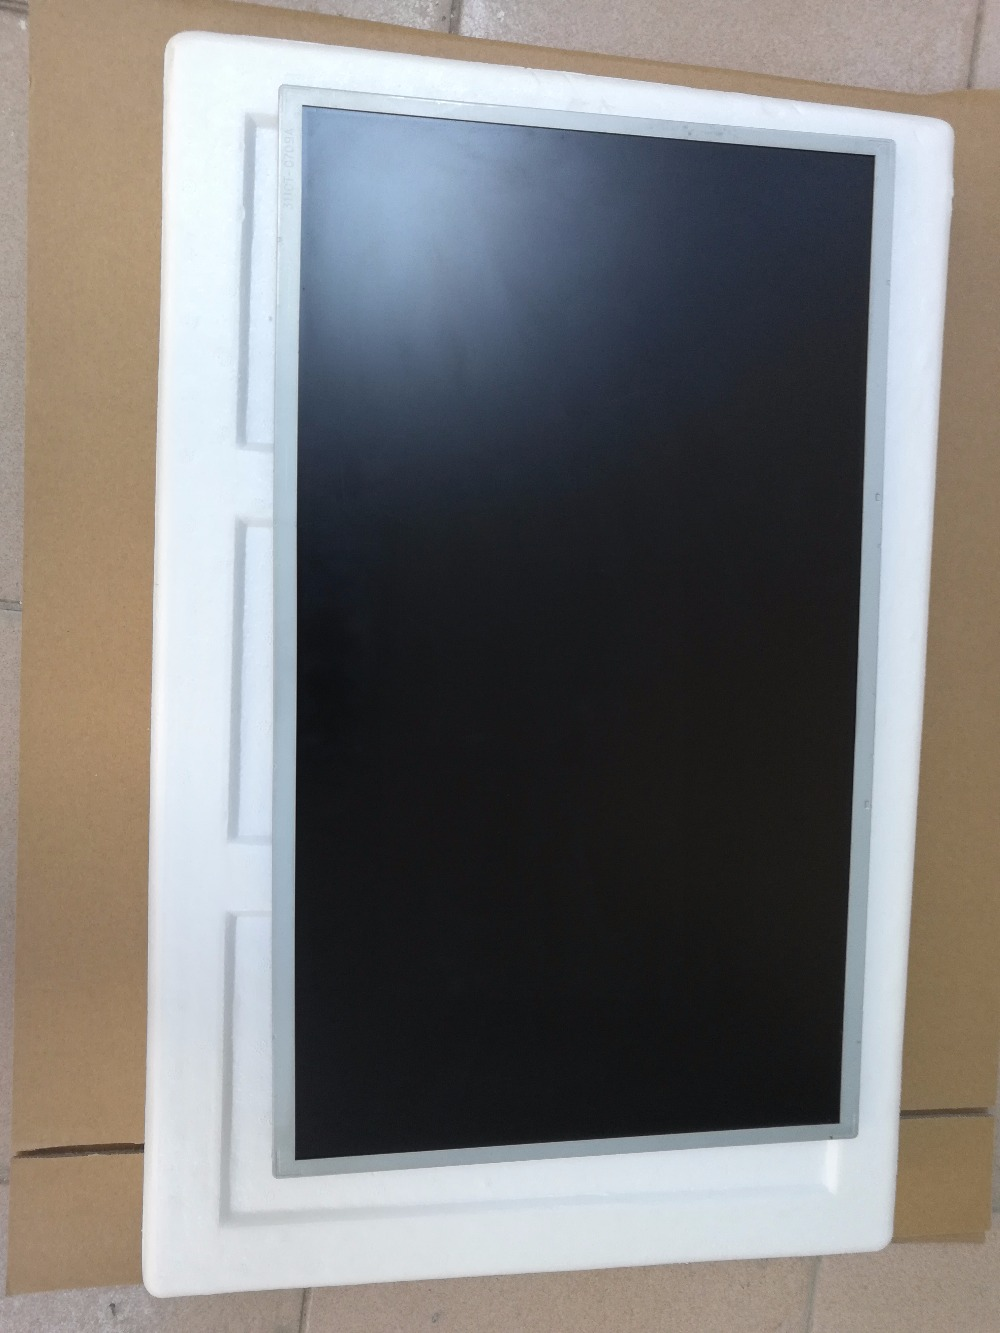 LM215WF3(SL)(C1) LM215WF3-SLC1 LM215WF3 SLC1 LM215WF3 SL C1 21-inch 1920*1080 LCD display Screen Modules original lm215wf3 sdd4 21 5 inch lm215wf3 sdd4 d4 lcd display grade a screen modules panel